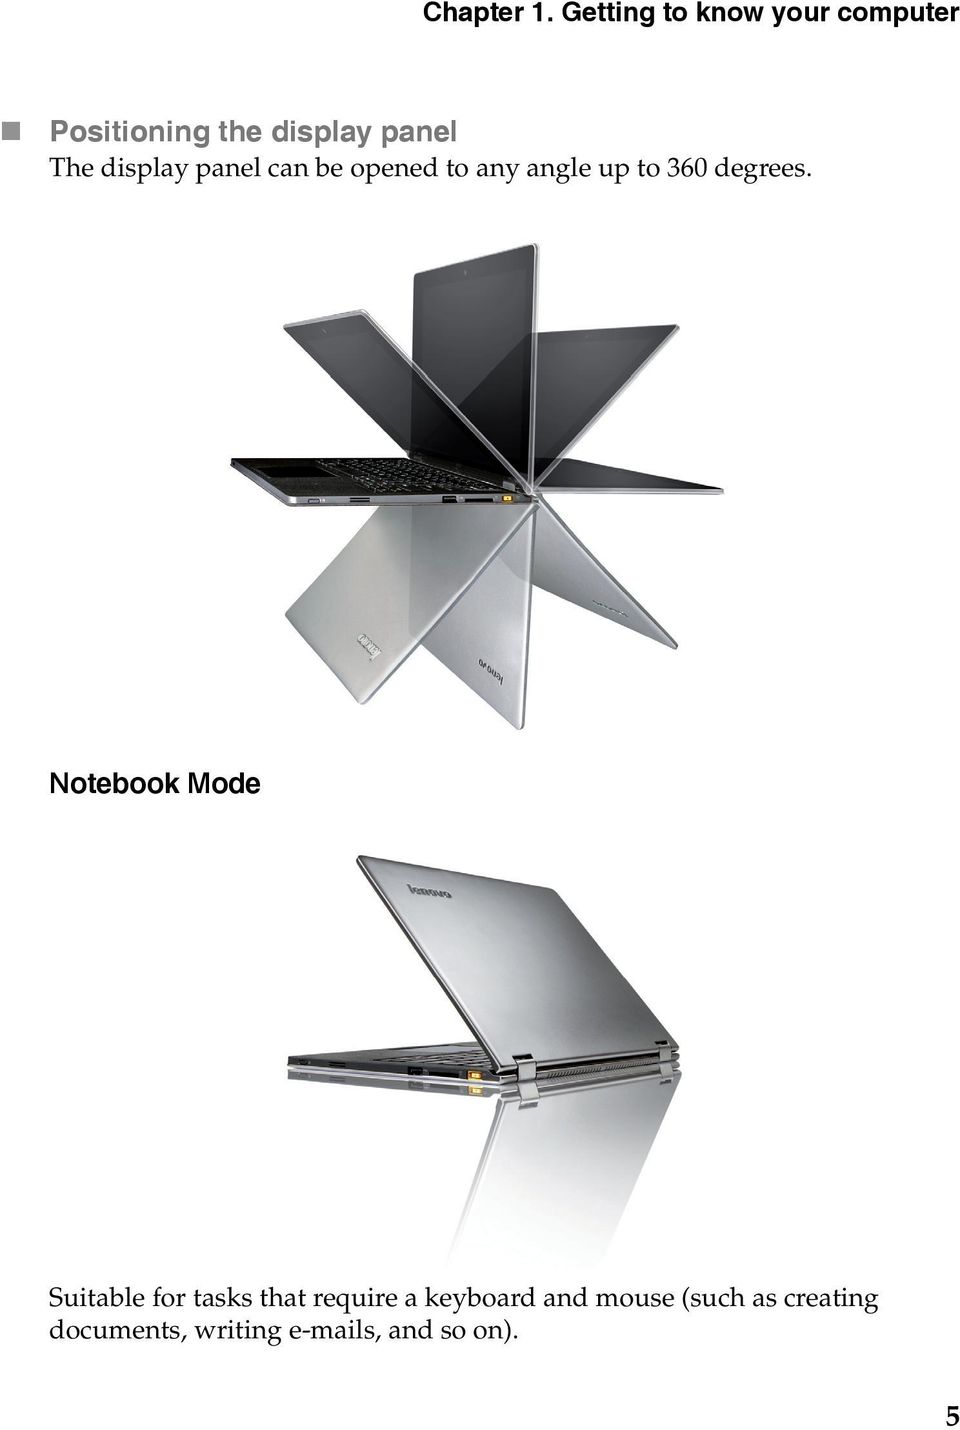 display panel can be opened to any angle up to 360 degrees.